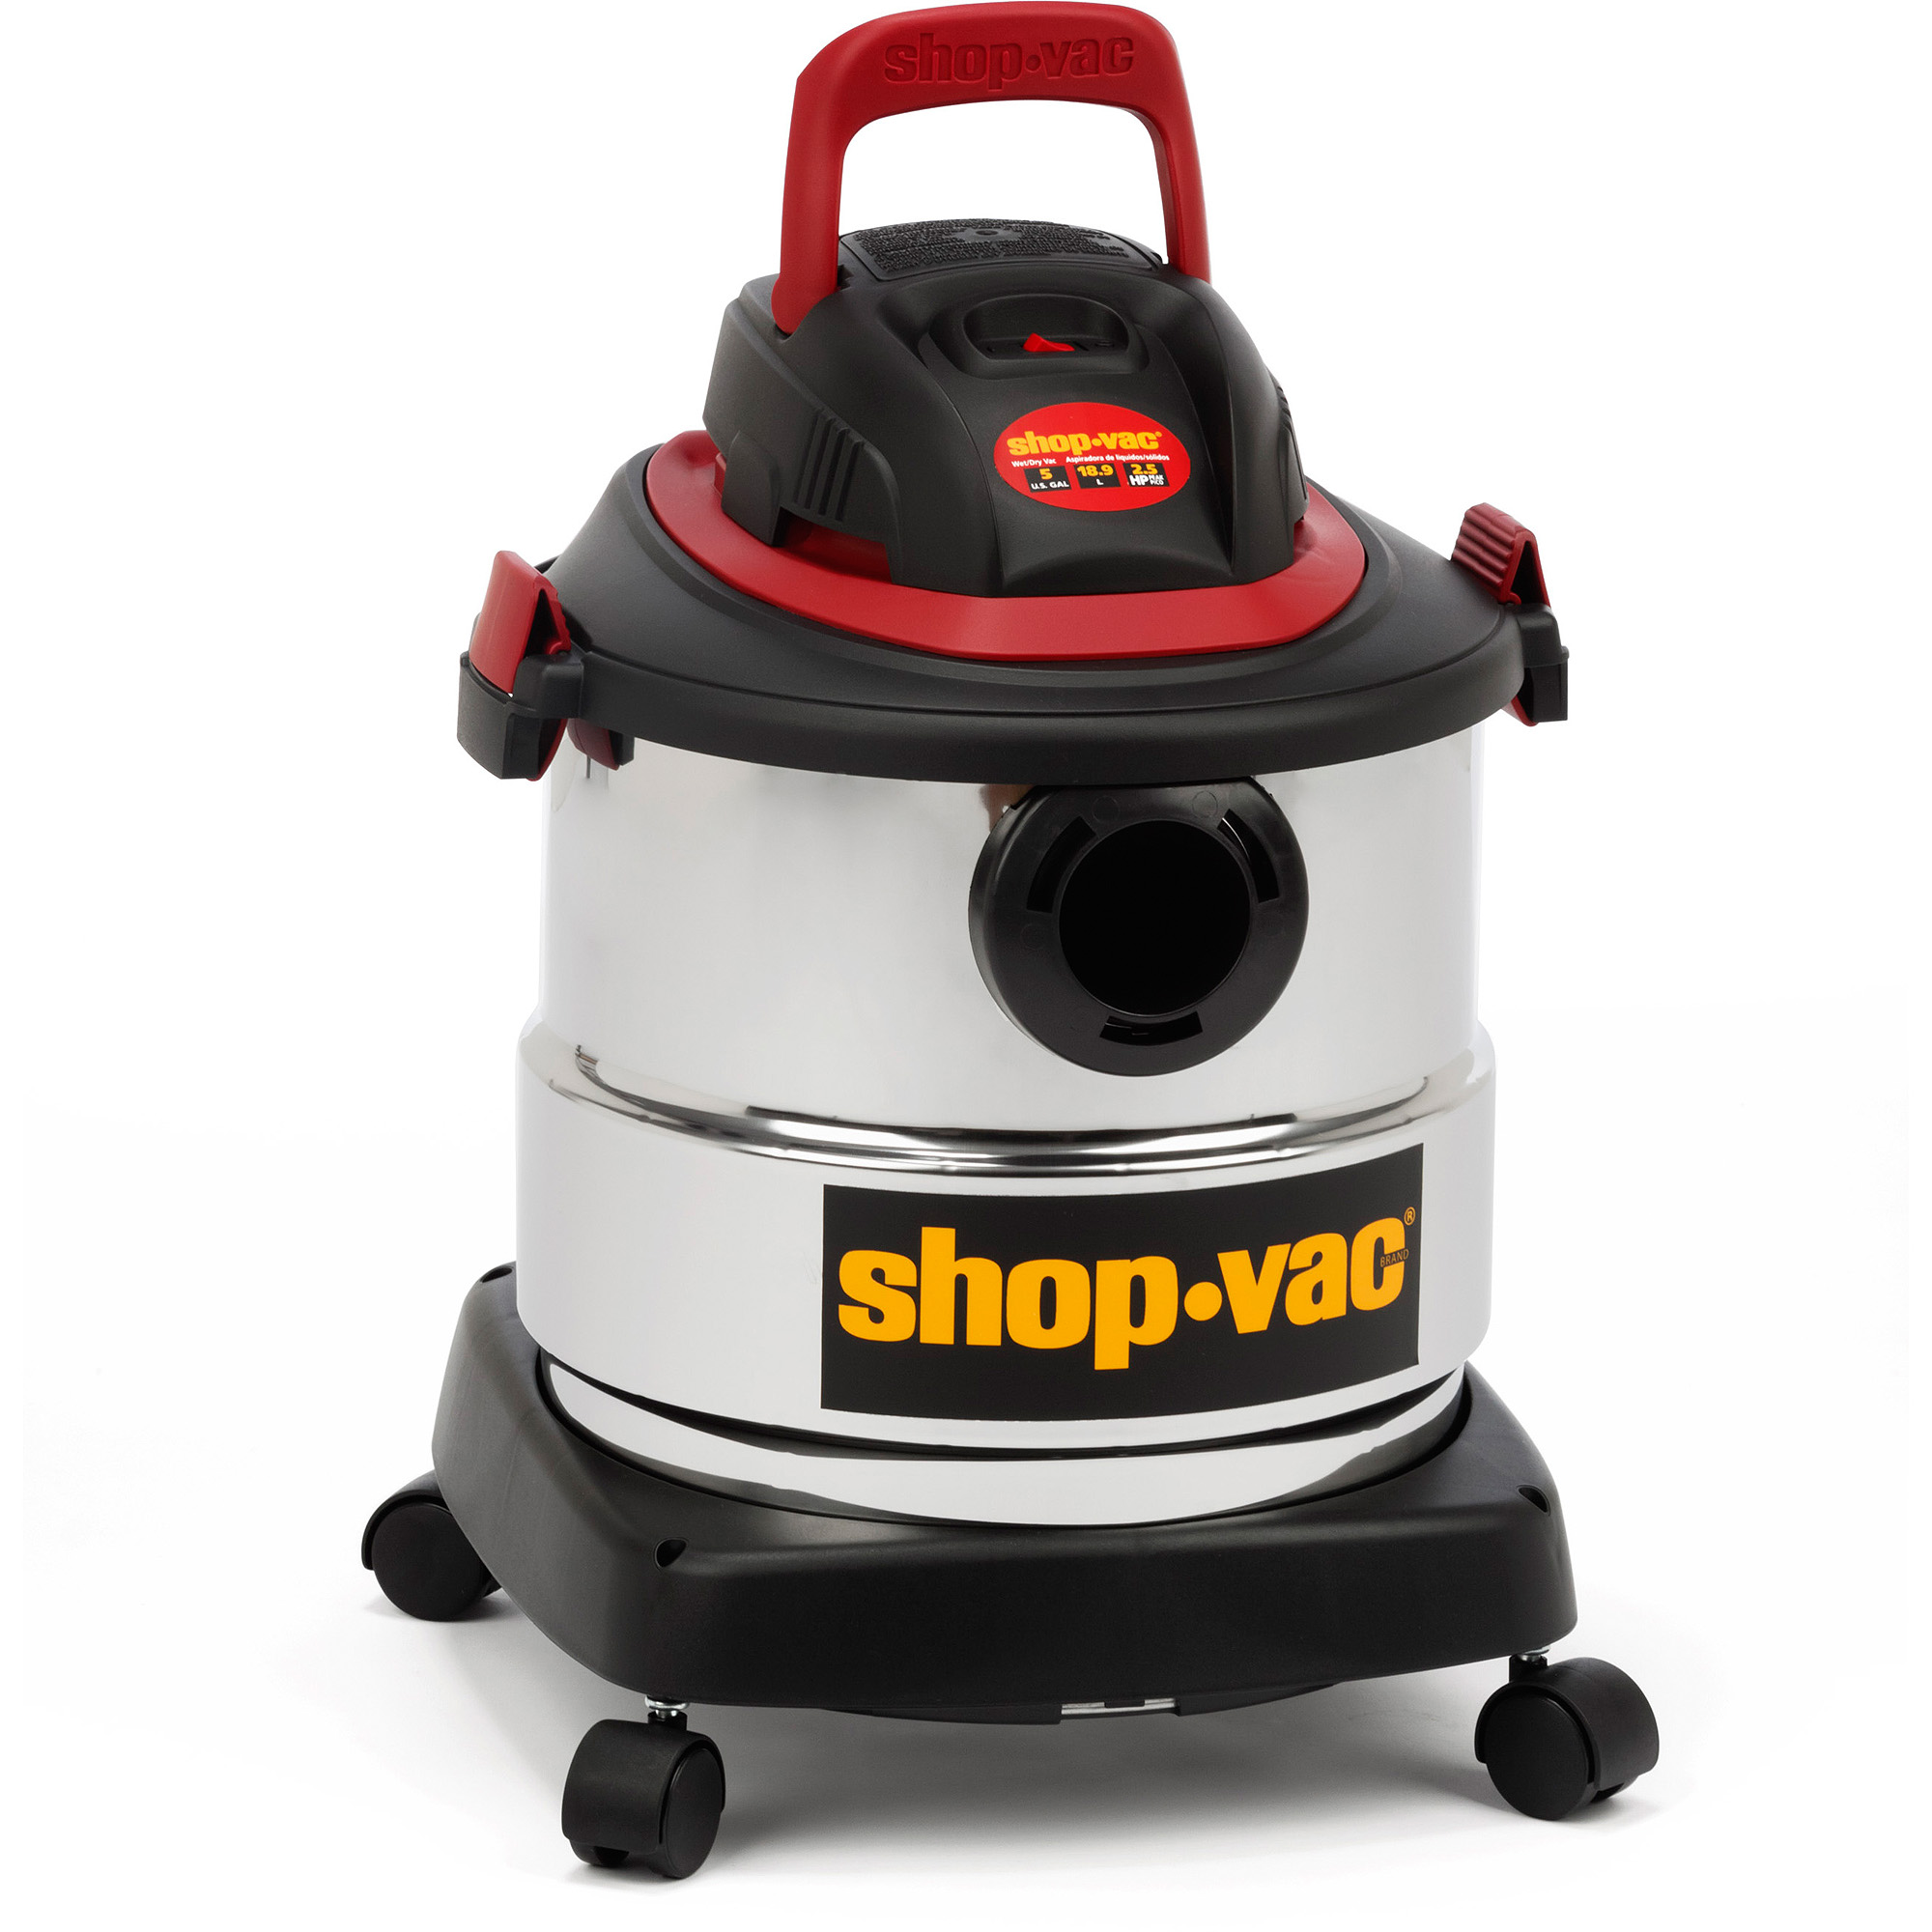 Shop-Vac 5-gallon Stainless Steel Wet/Dry Vacuum